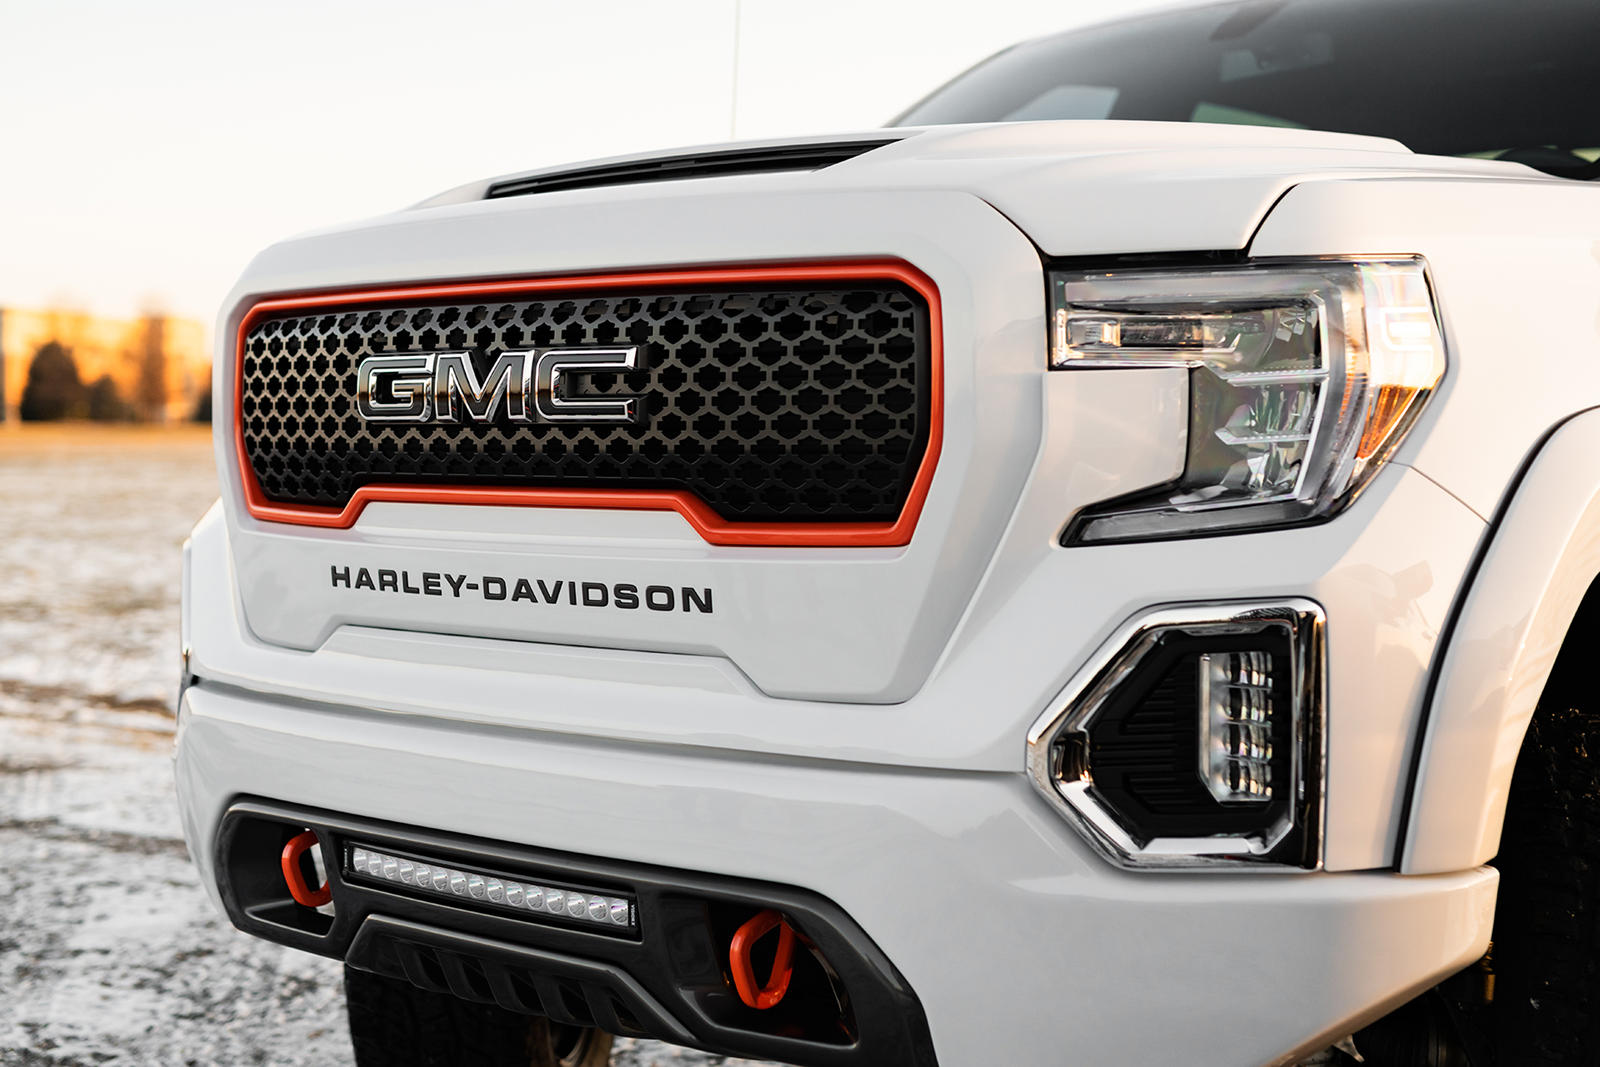 Back in 2000, Harley-Davidson helped Ford design special versions of its F-150 pickup truck line. Twenty years later, they went separate paths, and the famous bike company switched its attention to the GMC Sierra instead.